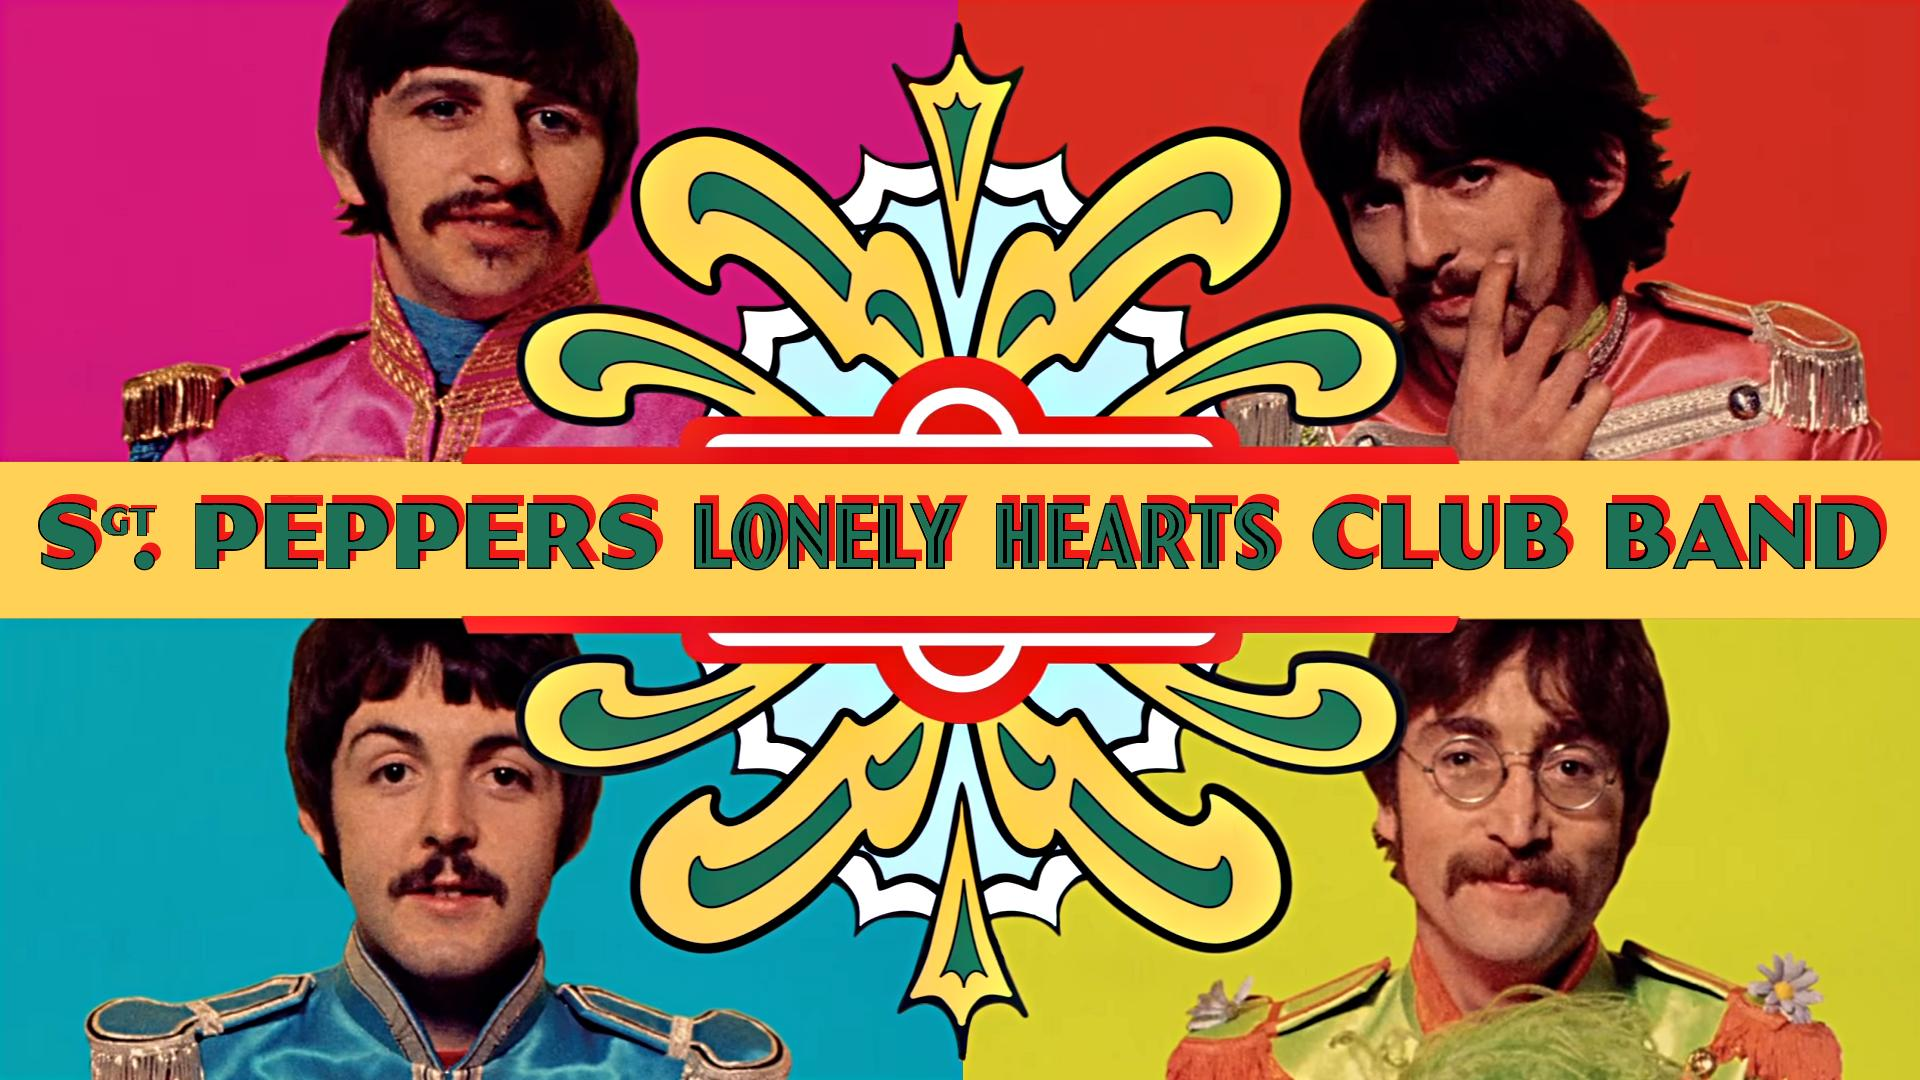 Sgt Pepper wallpaper beatles 1920x1080